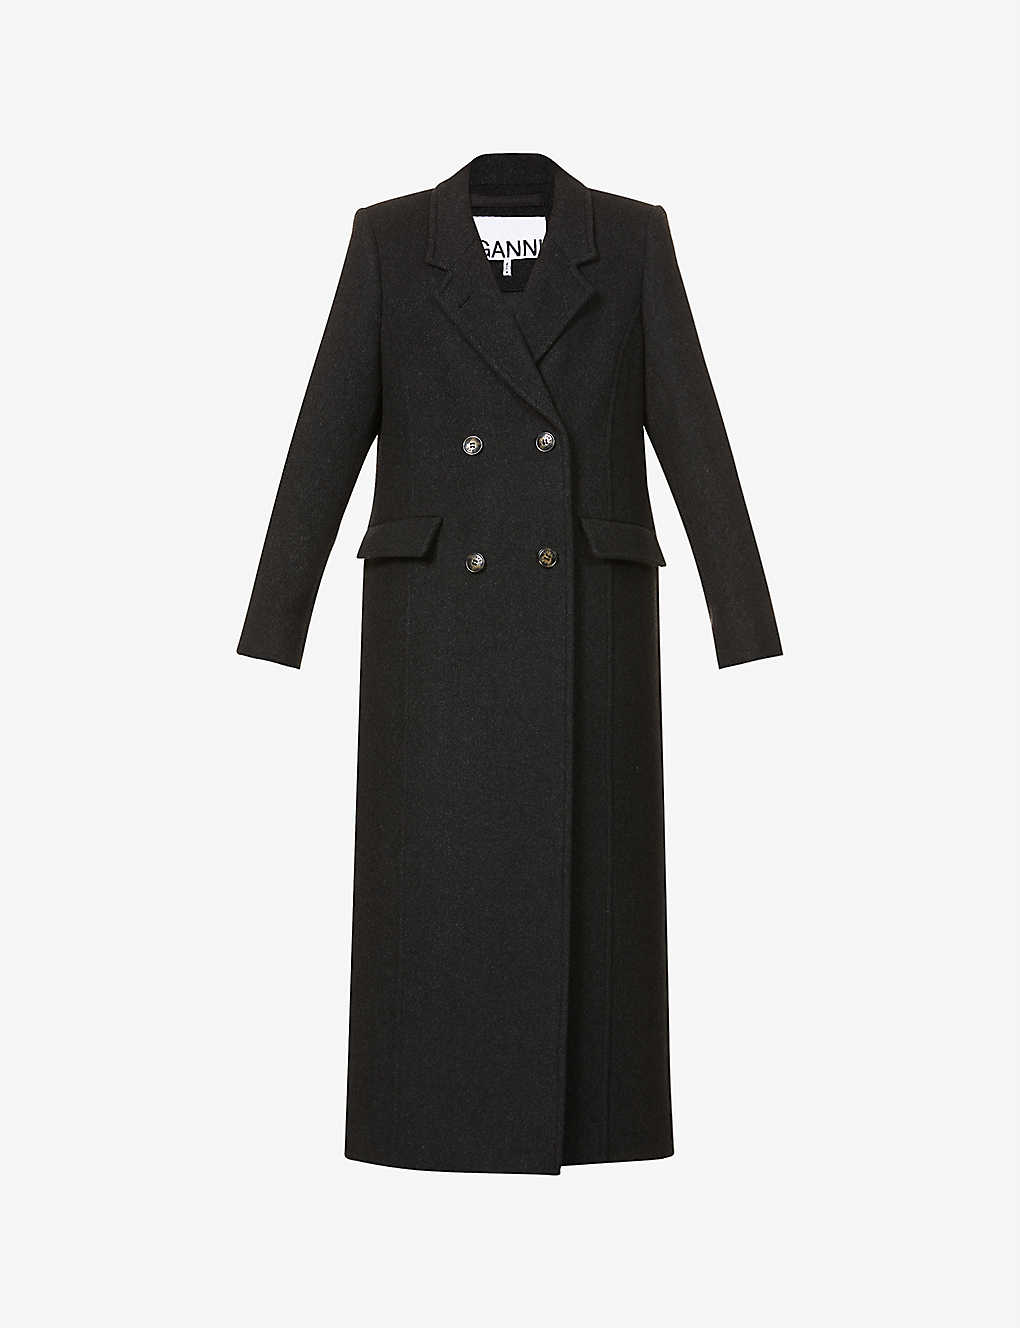 GANNI: Double-breasted recycled wool-blend coat